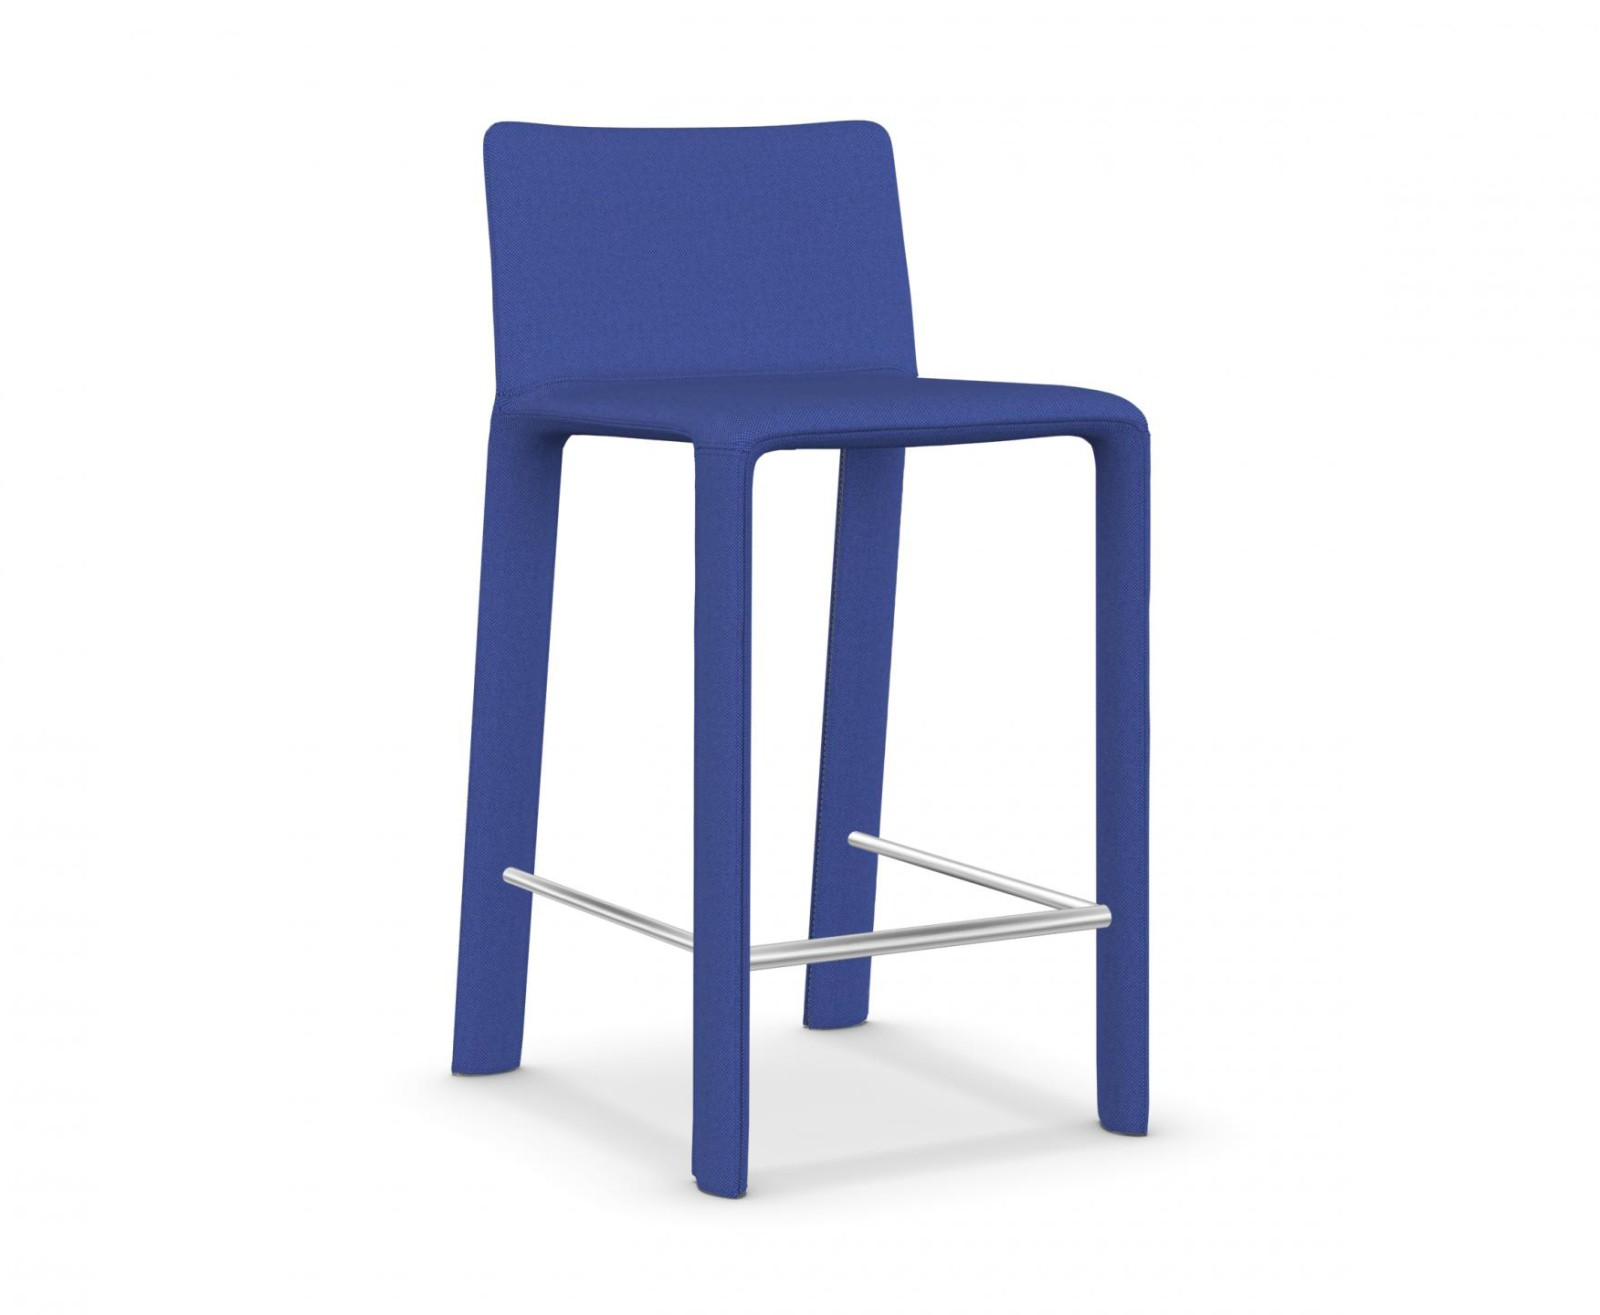 Joko Low Stool A7244 - Field 762 blue